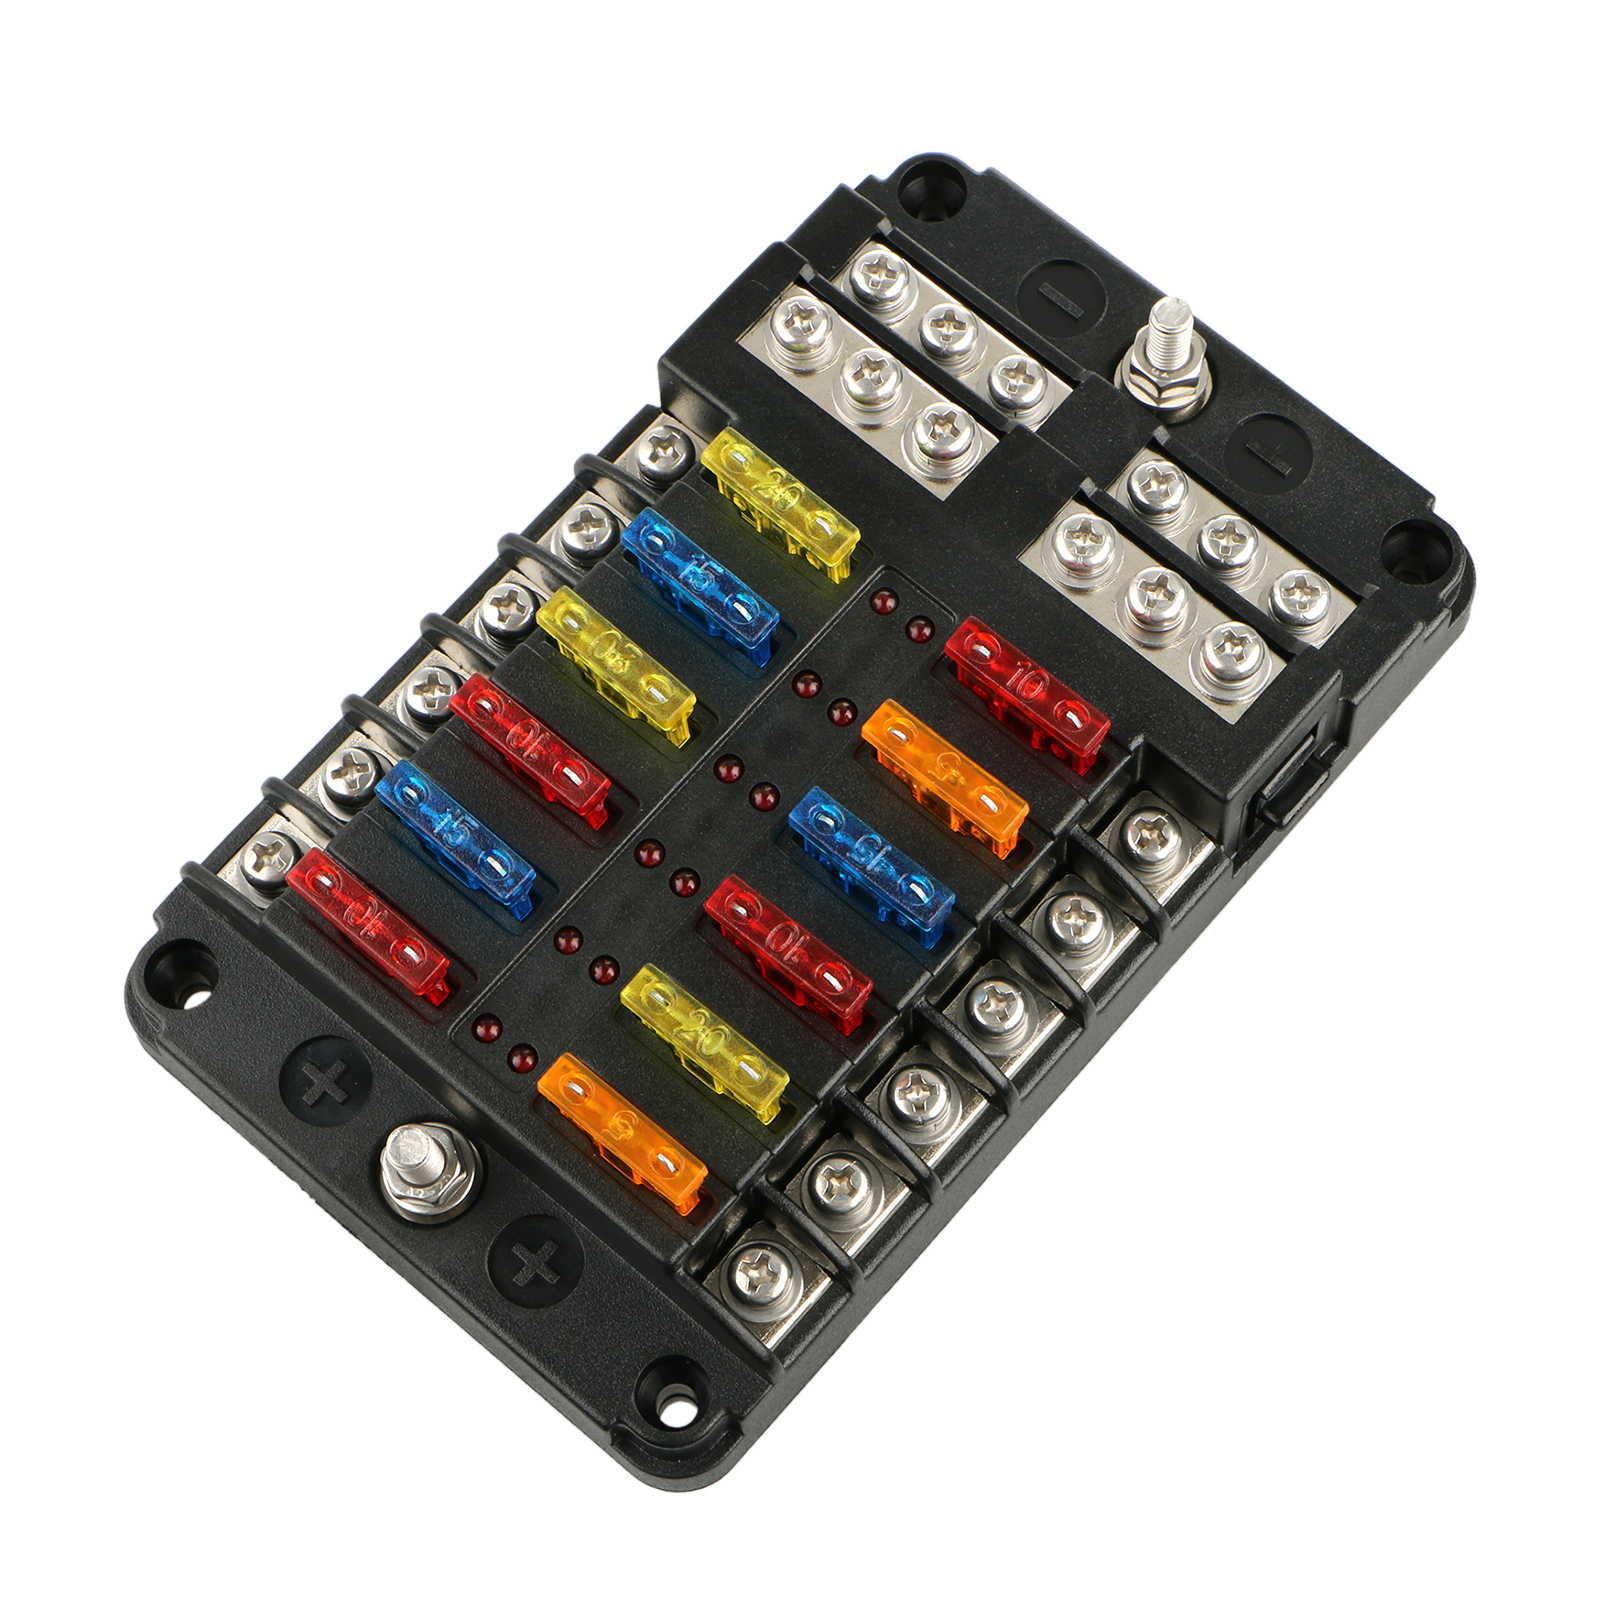 hight resolution of universal auto car 12 way blade fuse standard circuit holder box block dc 12 32v negative bus automotive walmart com